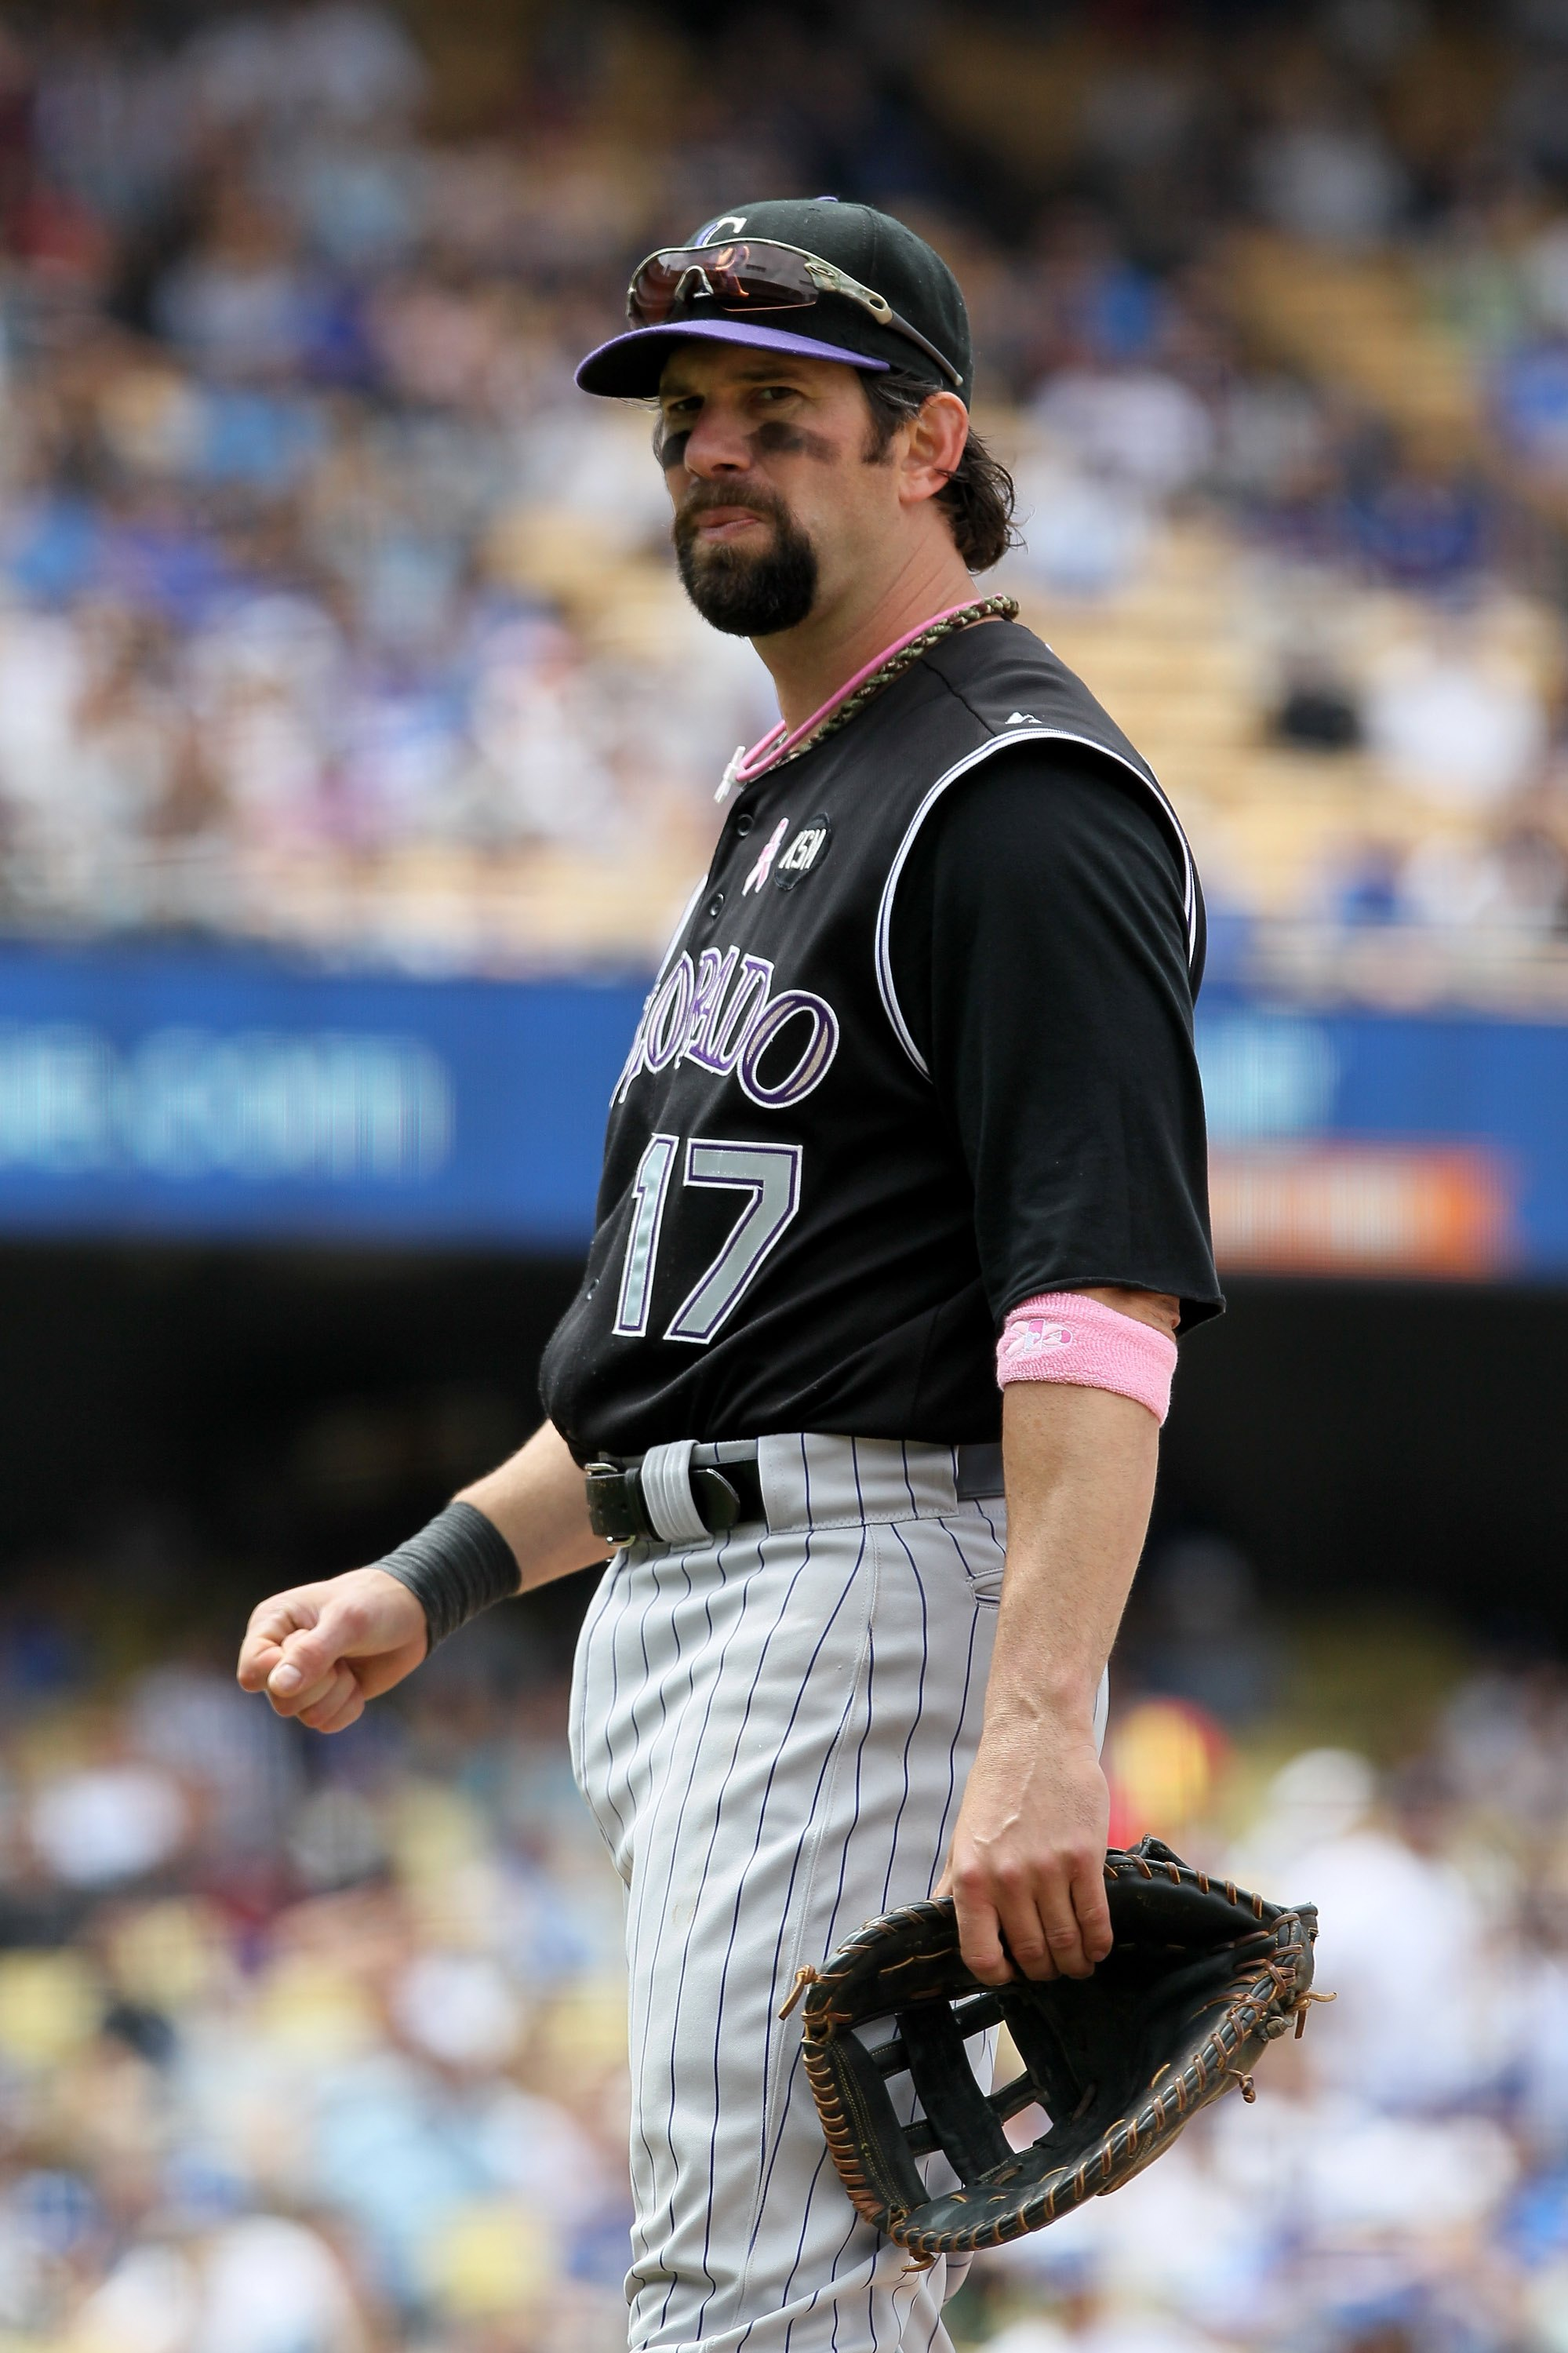 LOS ANGELES, CA - MAY 09:  Todd Helton #17 of the Colorado Rockies looks on against the Los Angeles Dodgers at Dodger Stadium on May 9, 2010 in Los Angeles, California.  (Photo by Jeff Gross/Getty Images)